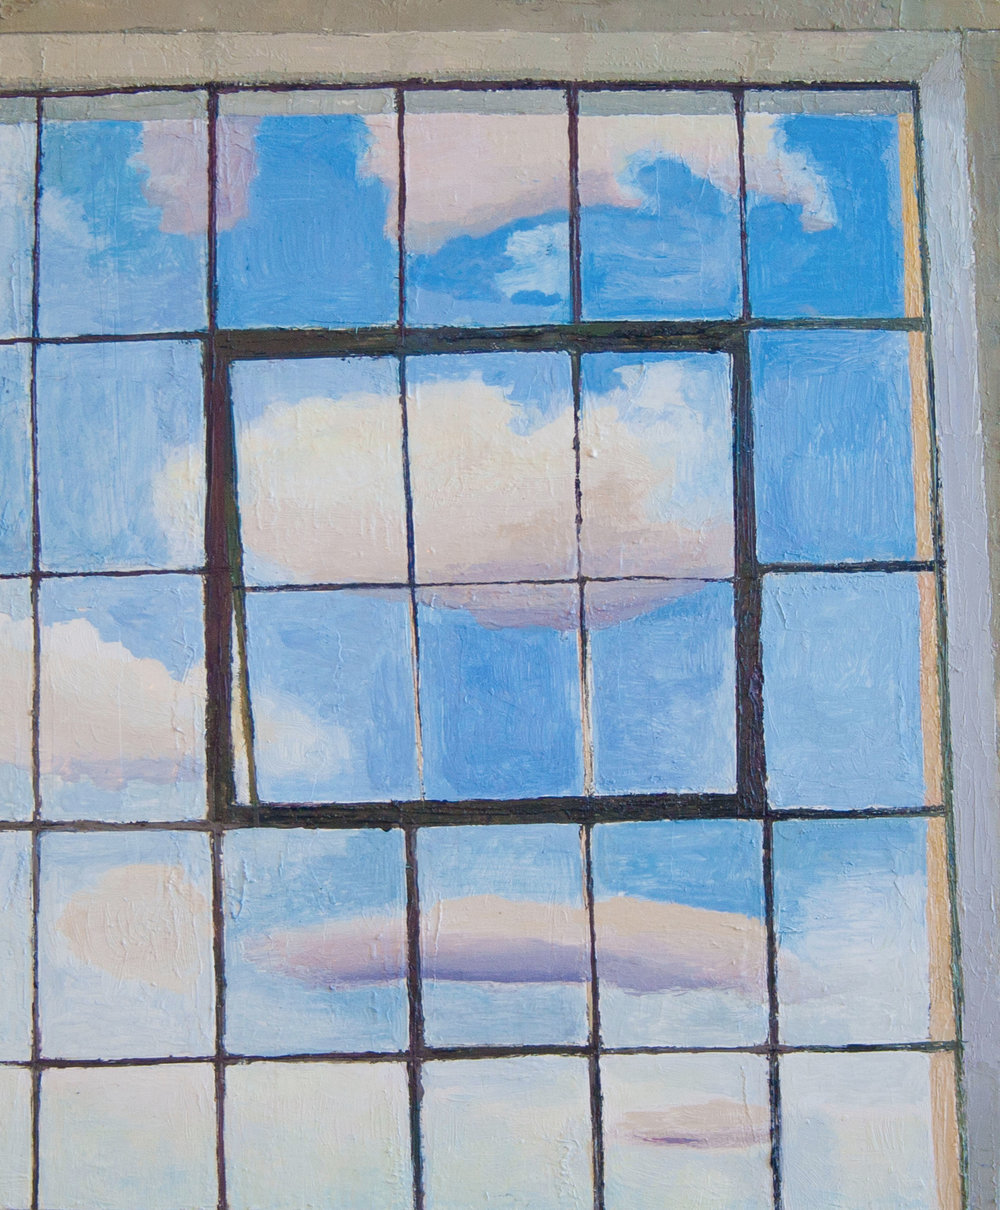 Caught Cloud, Oil on panel, 11x 9 inches, 2014-15